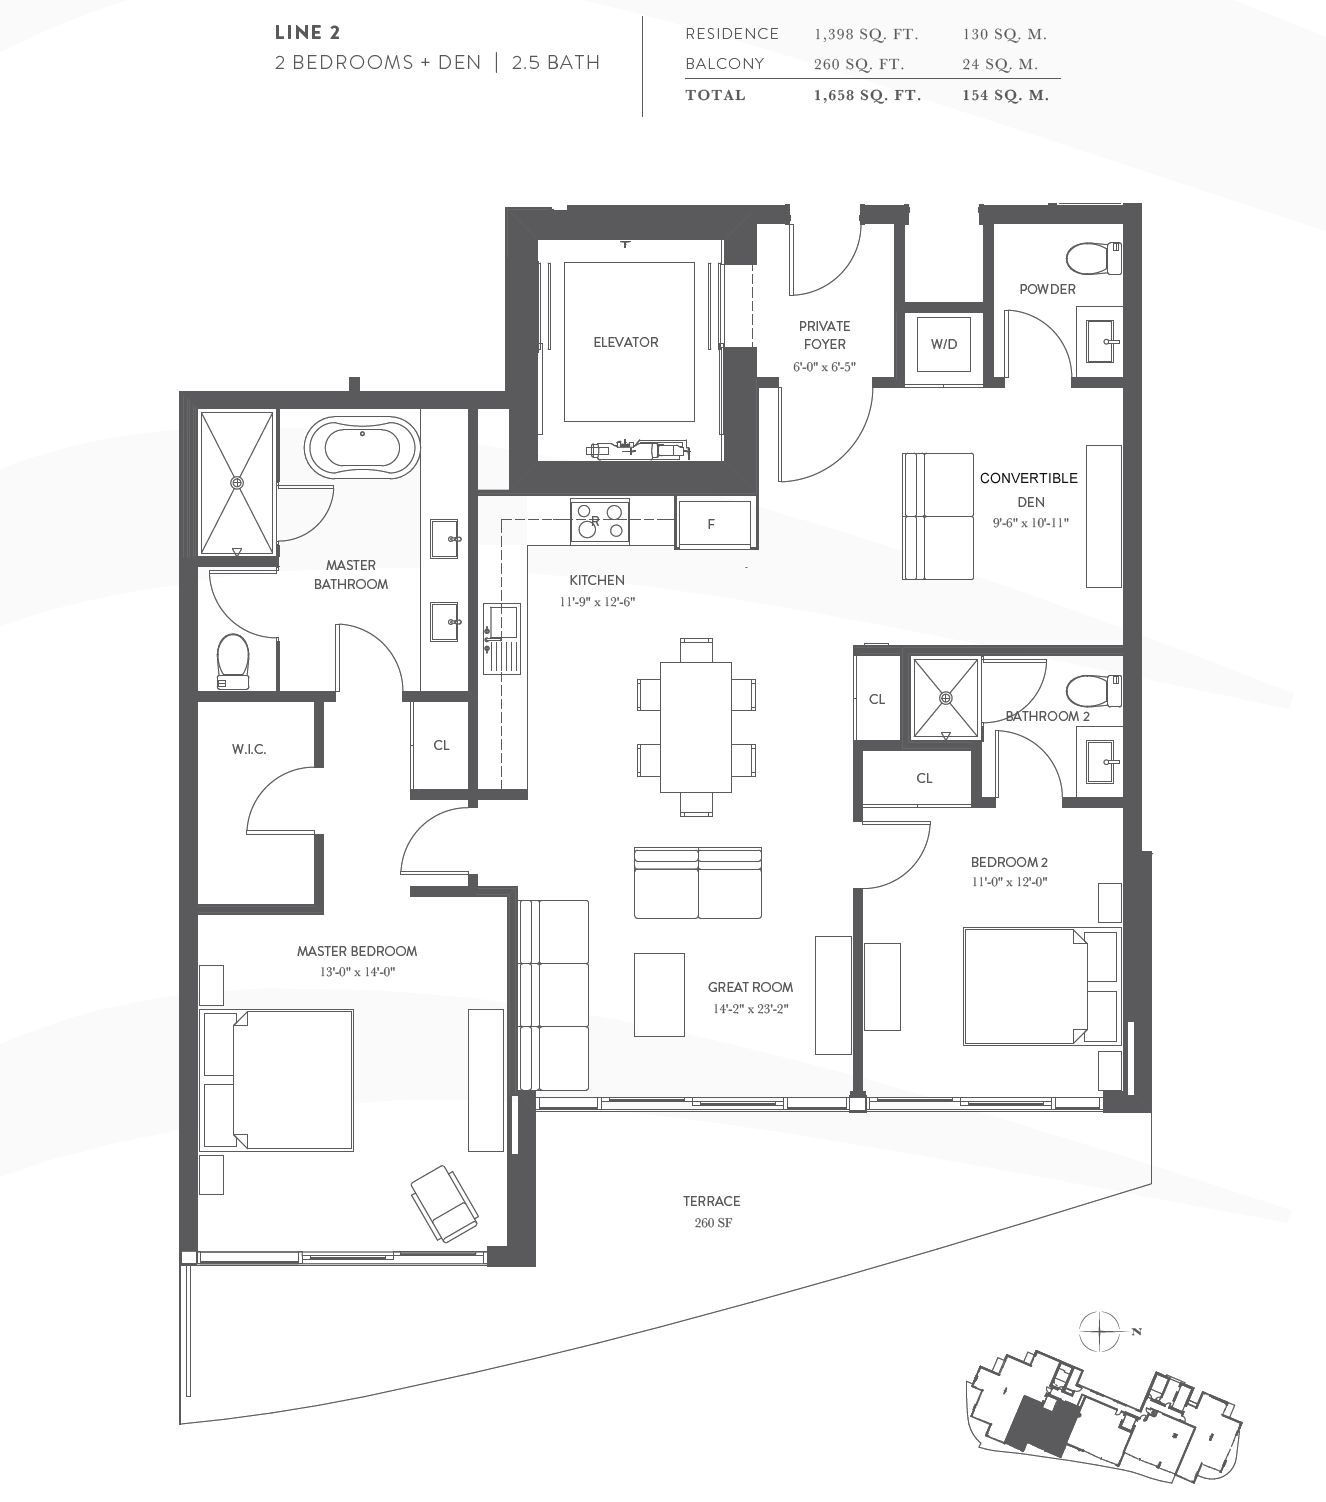 Aurora Floor Plan Line 02 2 Bedroom 2 5 Bathroom Den Residences Include 10 Ceilings Private Curved Ter Floor To Ceiling Windows Floor Plans House Plans